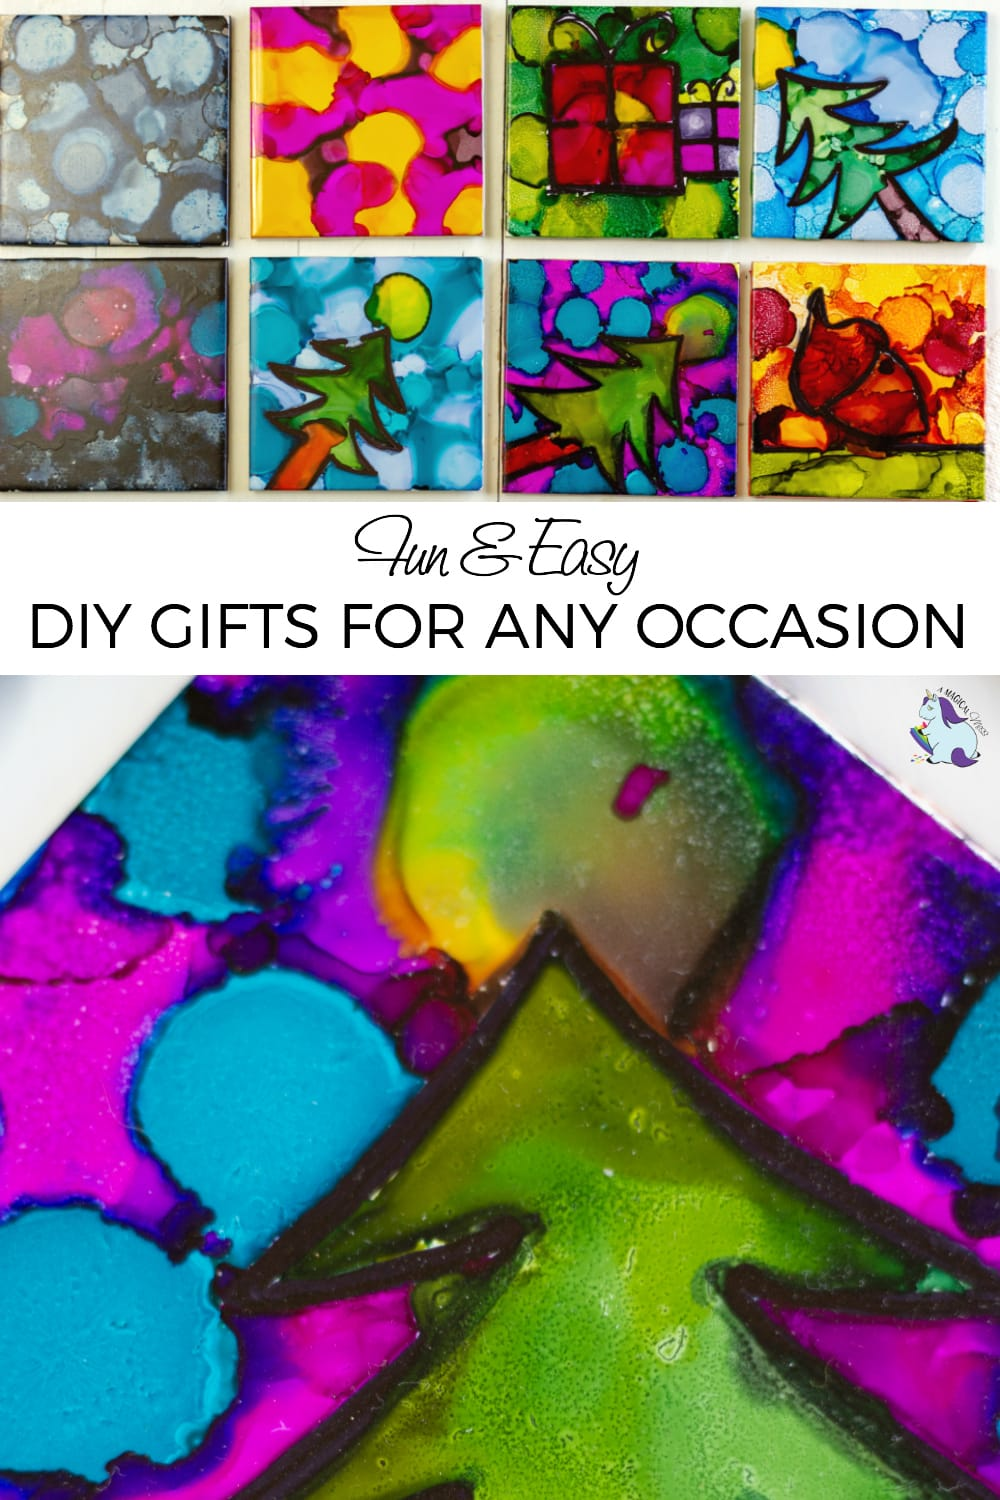 Pretty tiles using alcohol inks. Alcohol Ink Ideas for Creative DIY Gifts #DIYGifts #AlcoholInkArt #diy #crafts #giftideas #creative #art #hobby